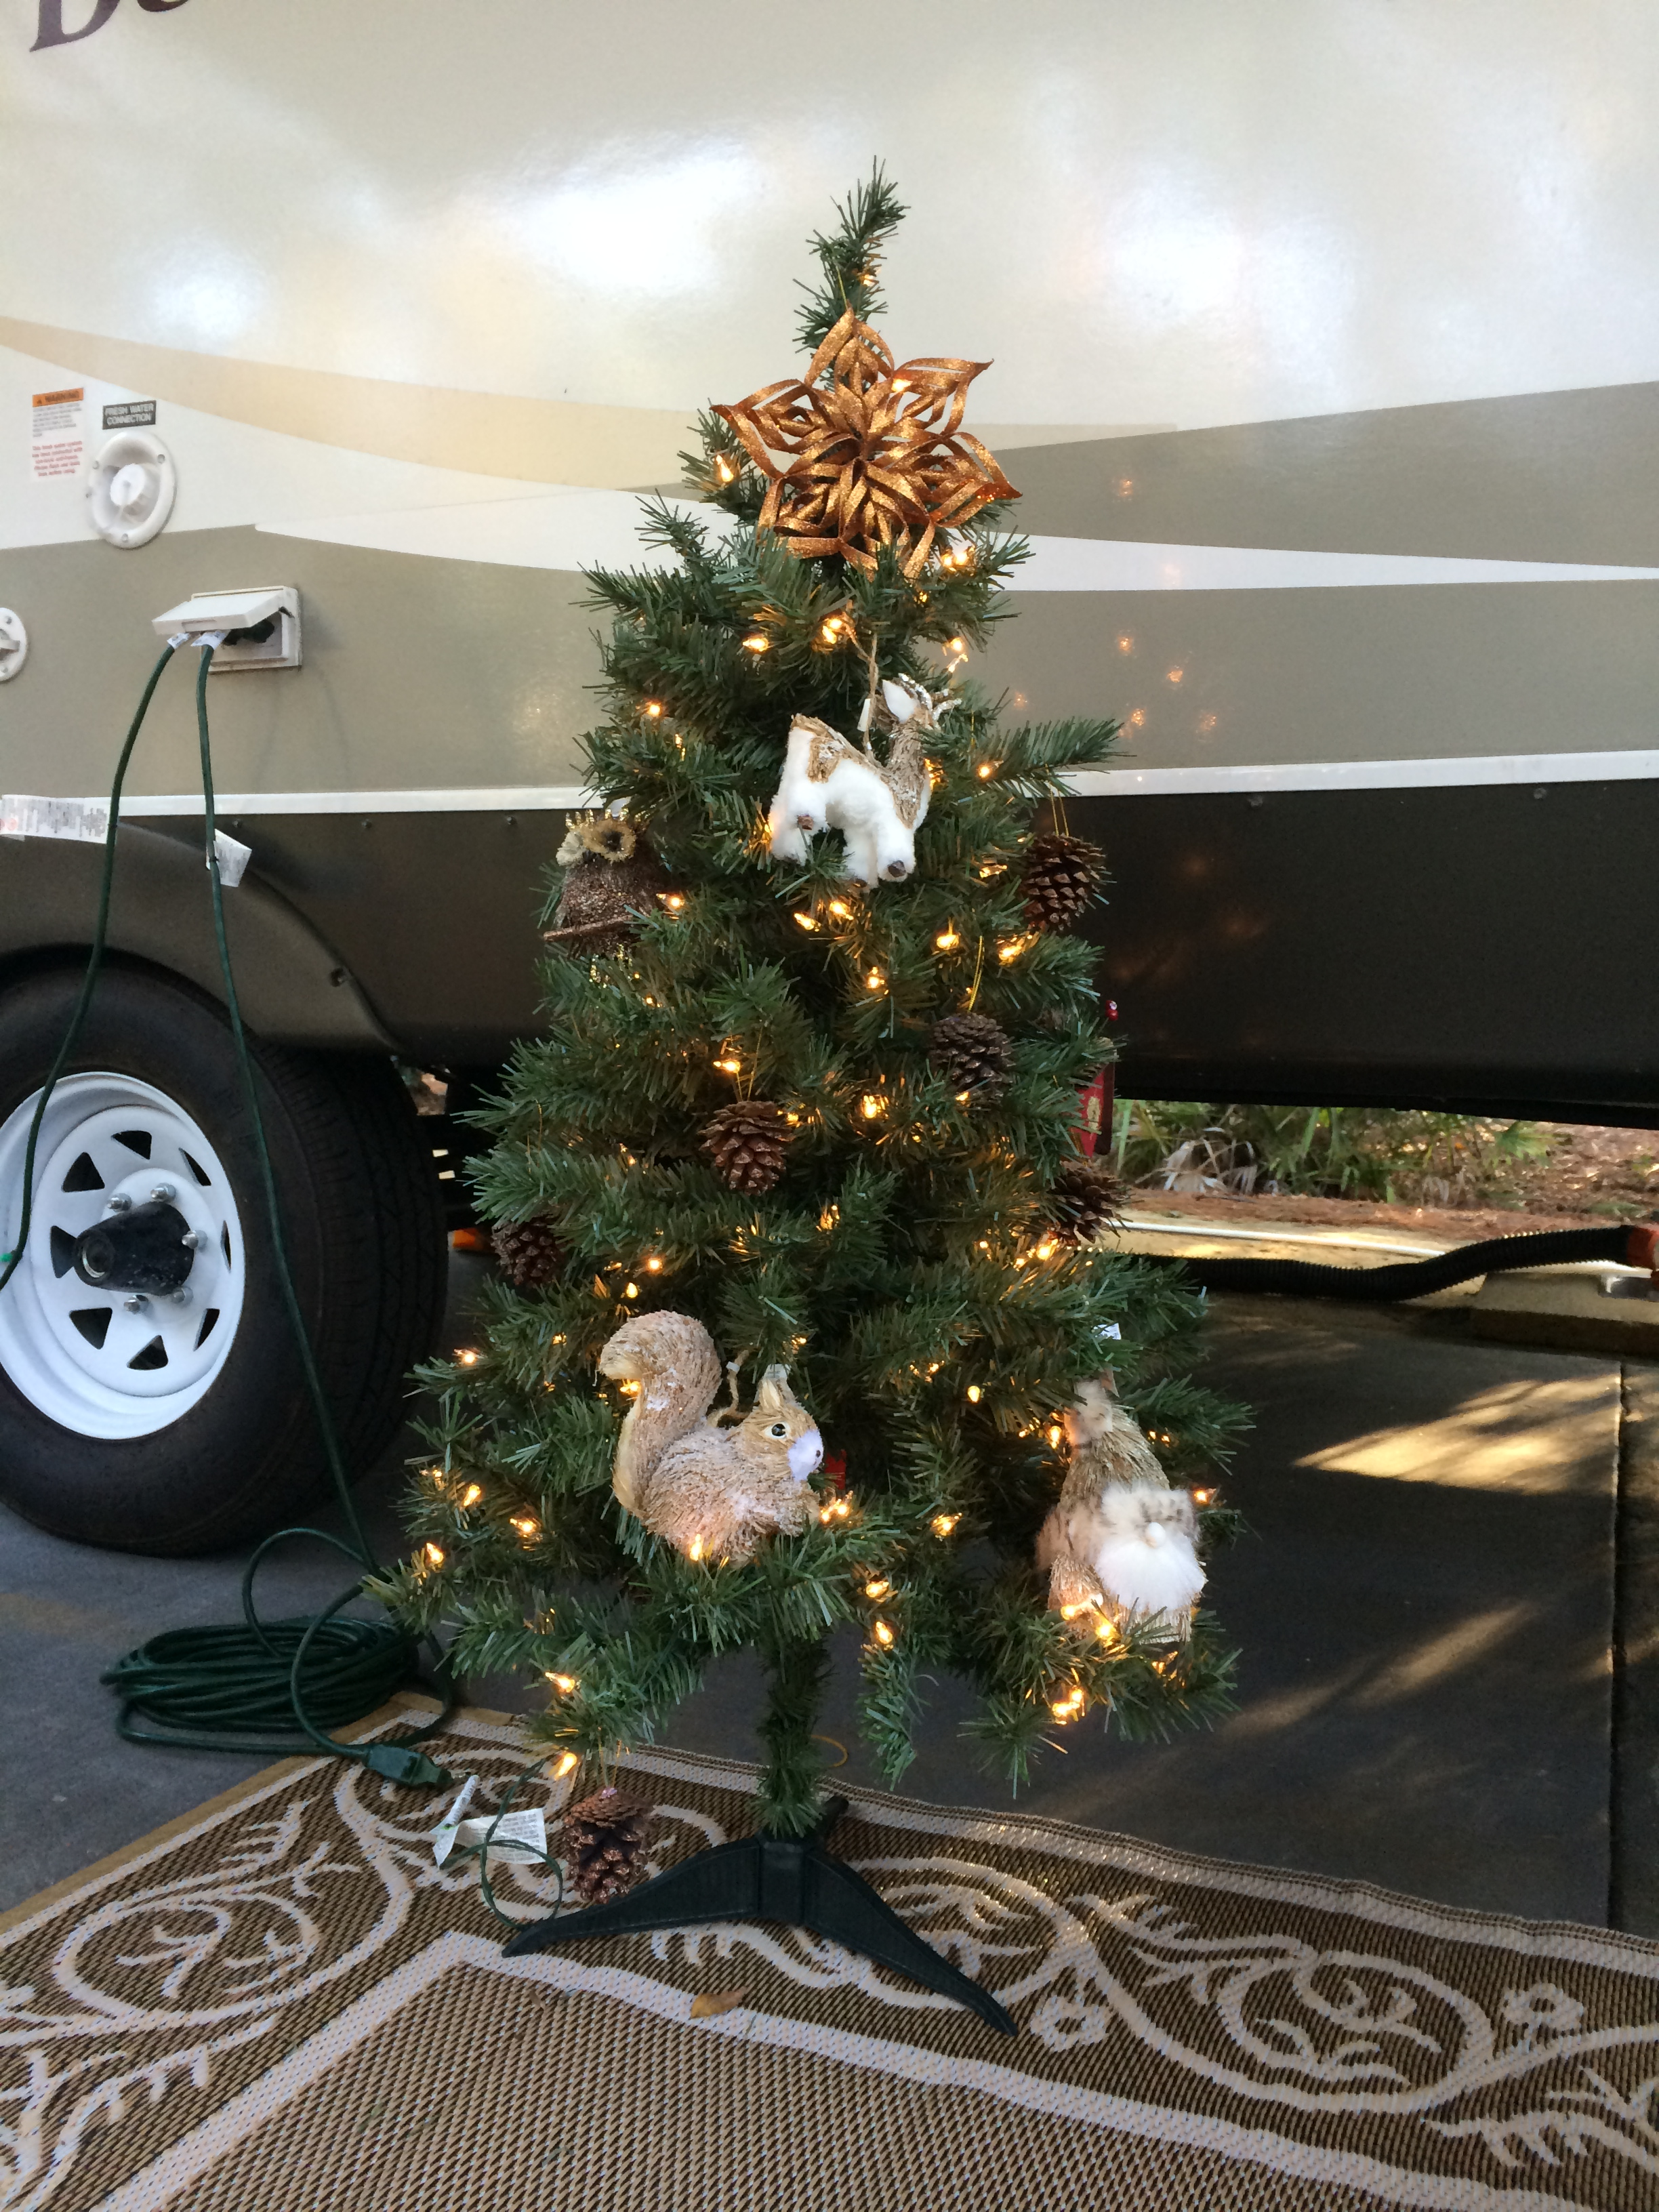 meachams rv disney fort wilderness resort camper christmas tree - Camper Christmas Decorations